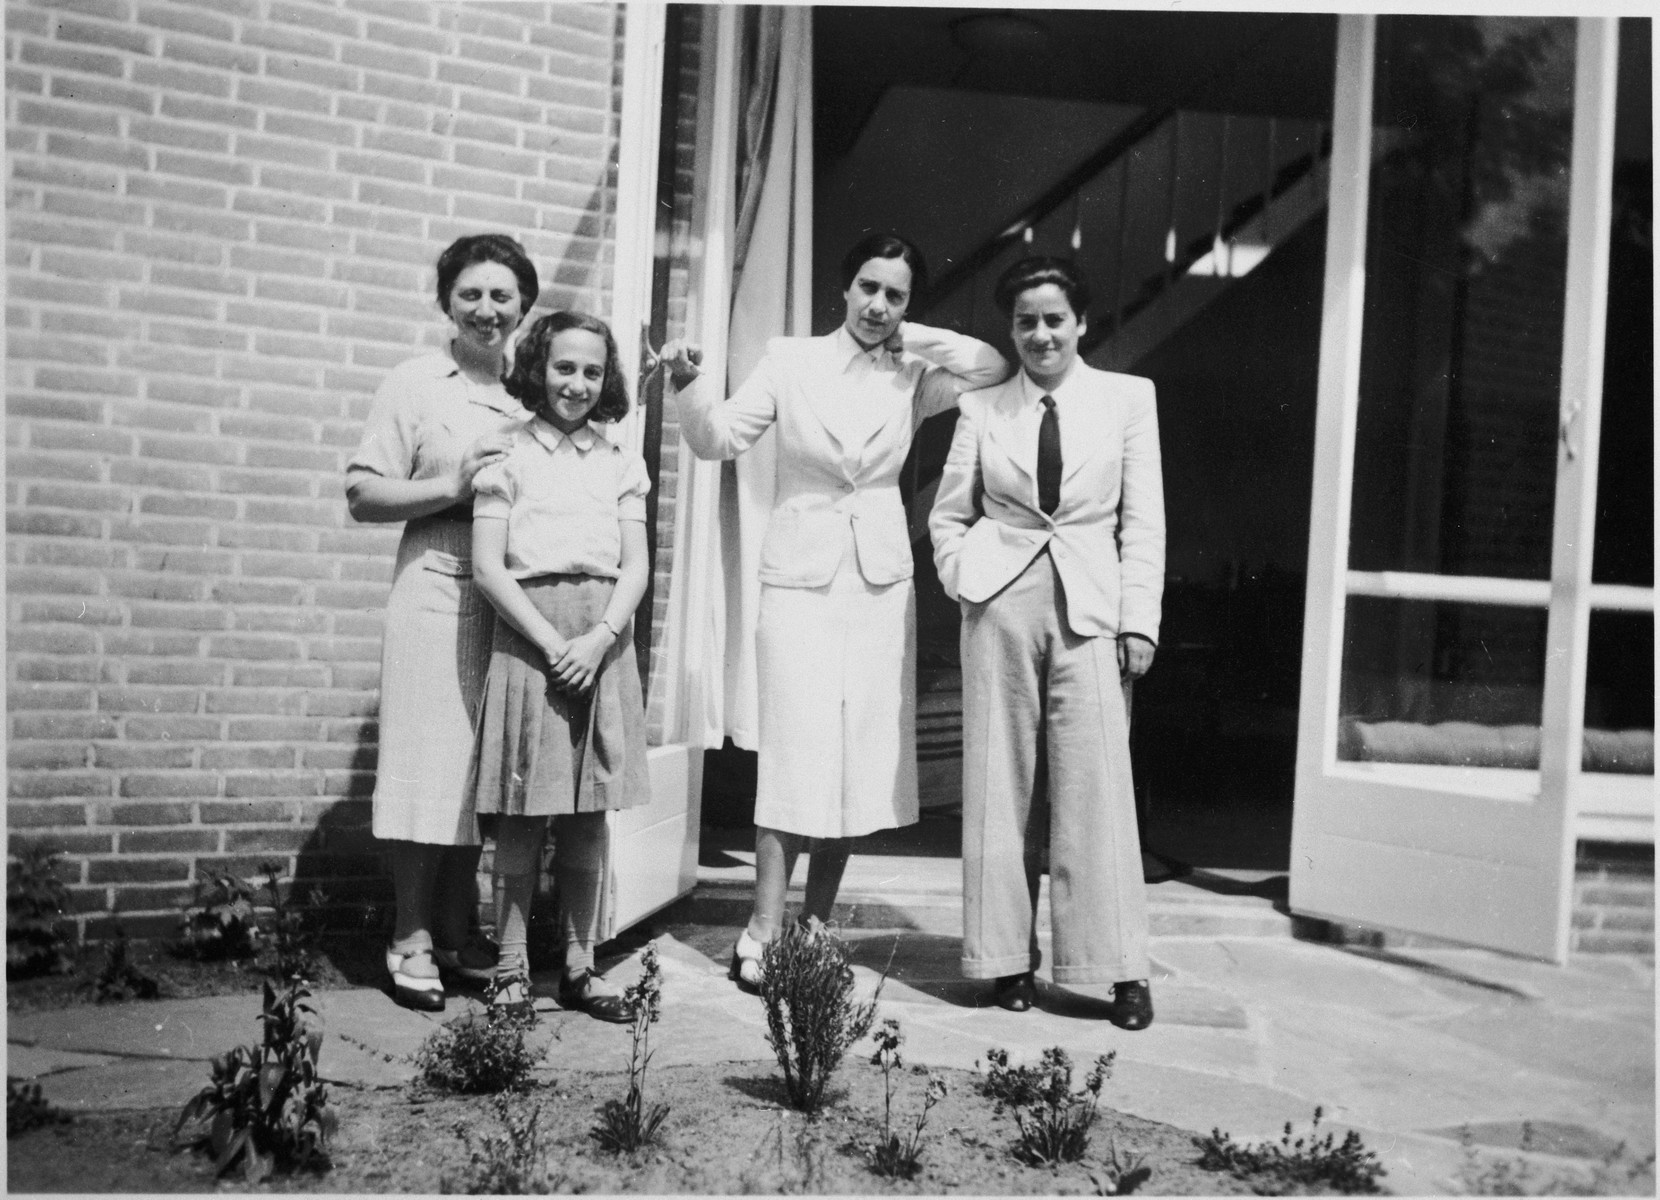 Frieda Belinfante (far right) poses with three friends before the war.    Pictured next to Frieda Belinfante is the painter Dorry Kahn.  Belinfante later helped to find a hiding place for her and her family.